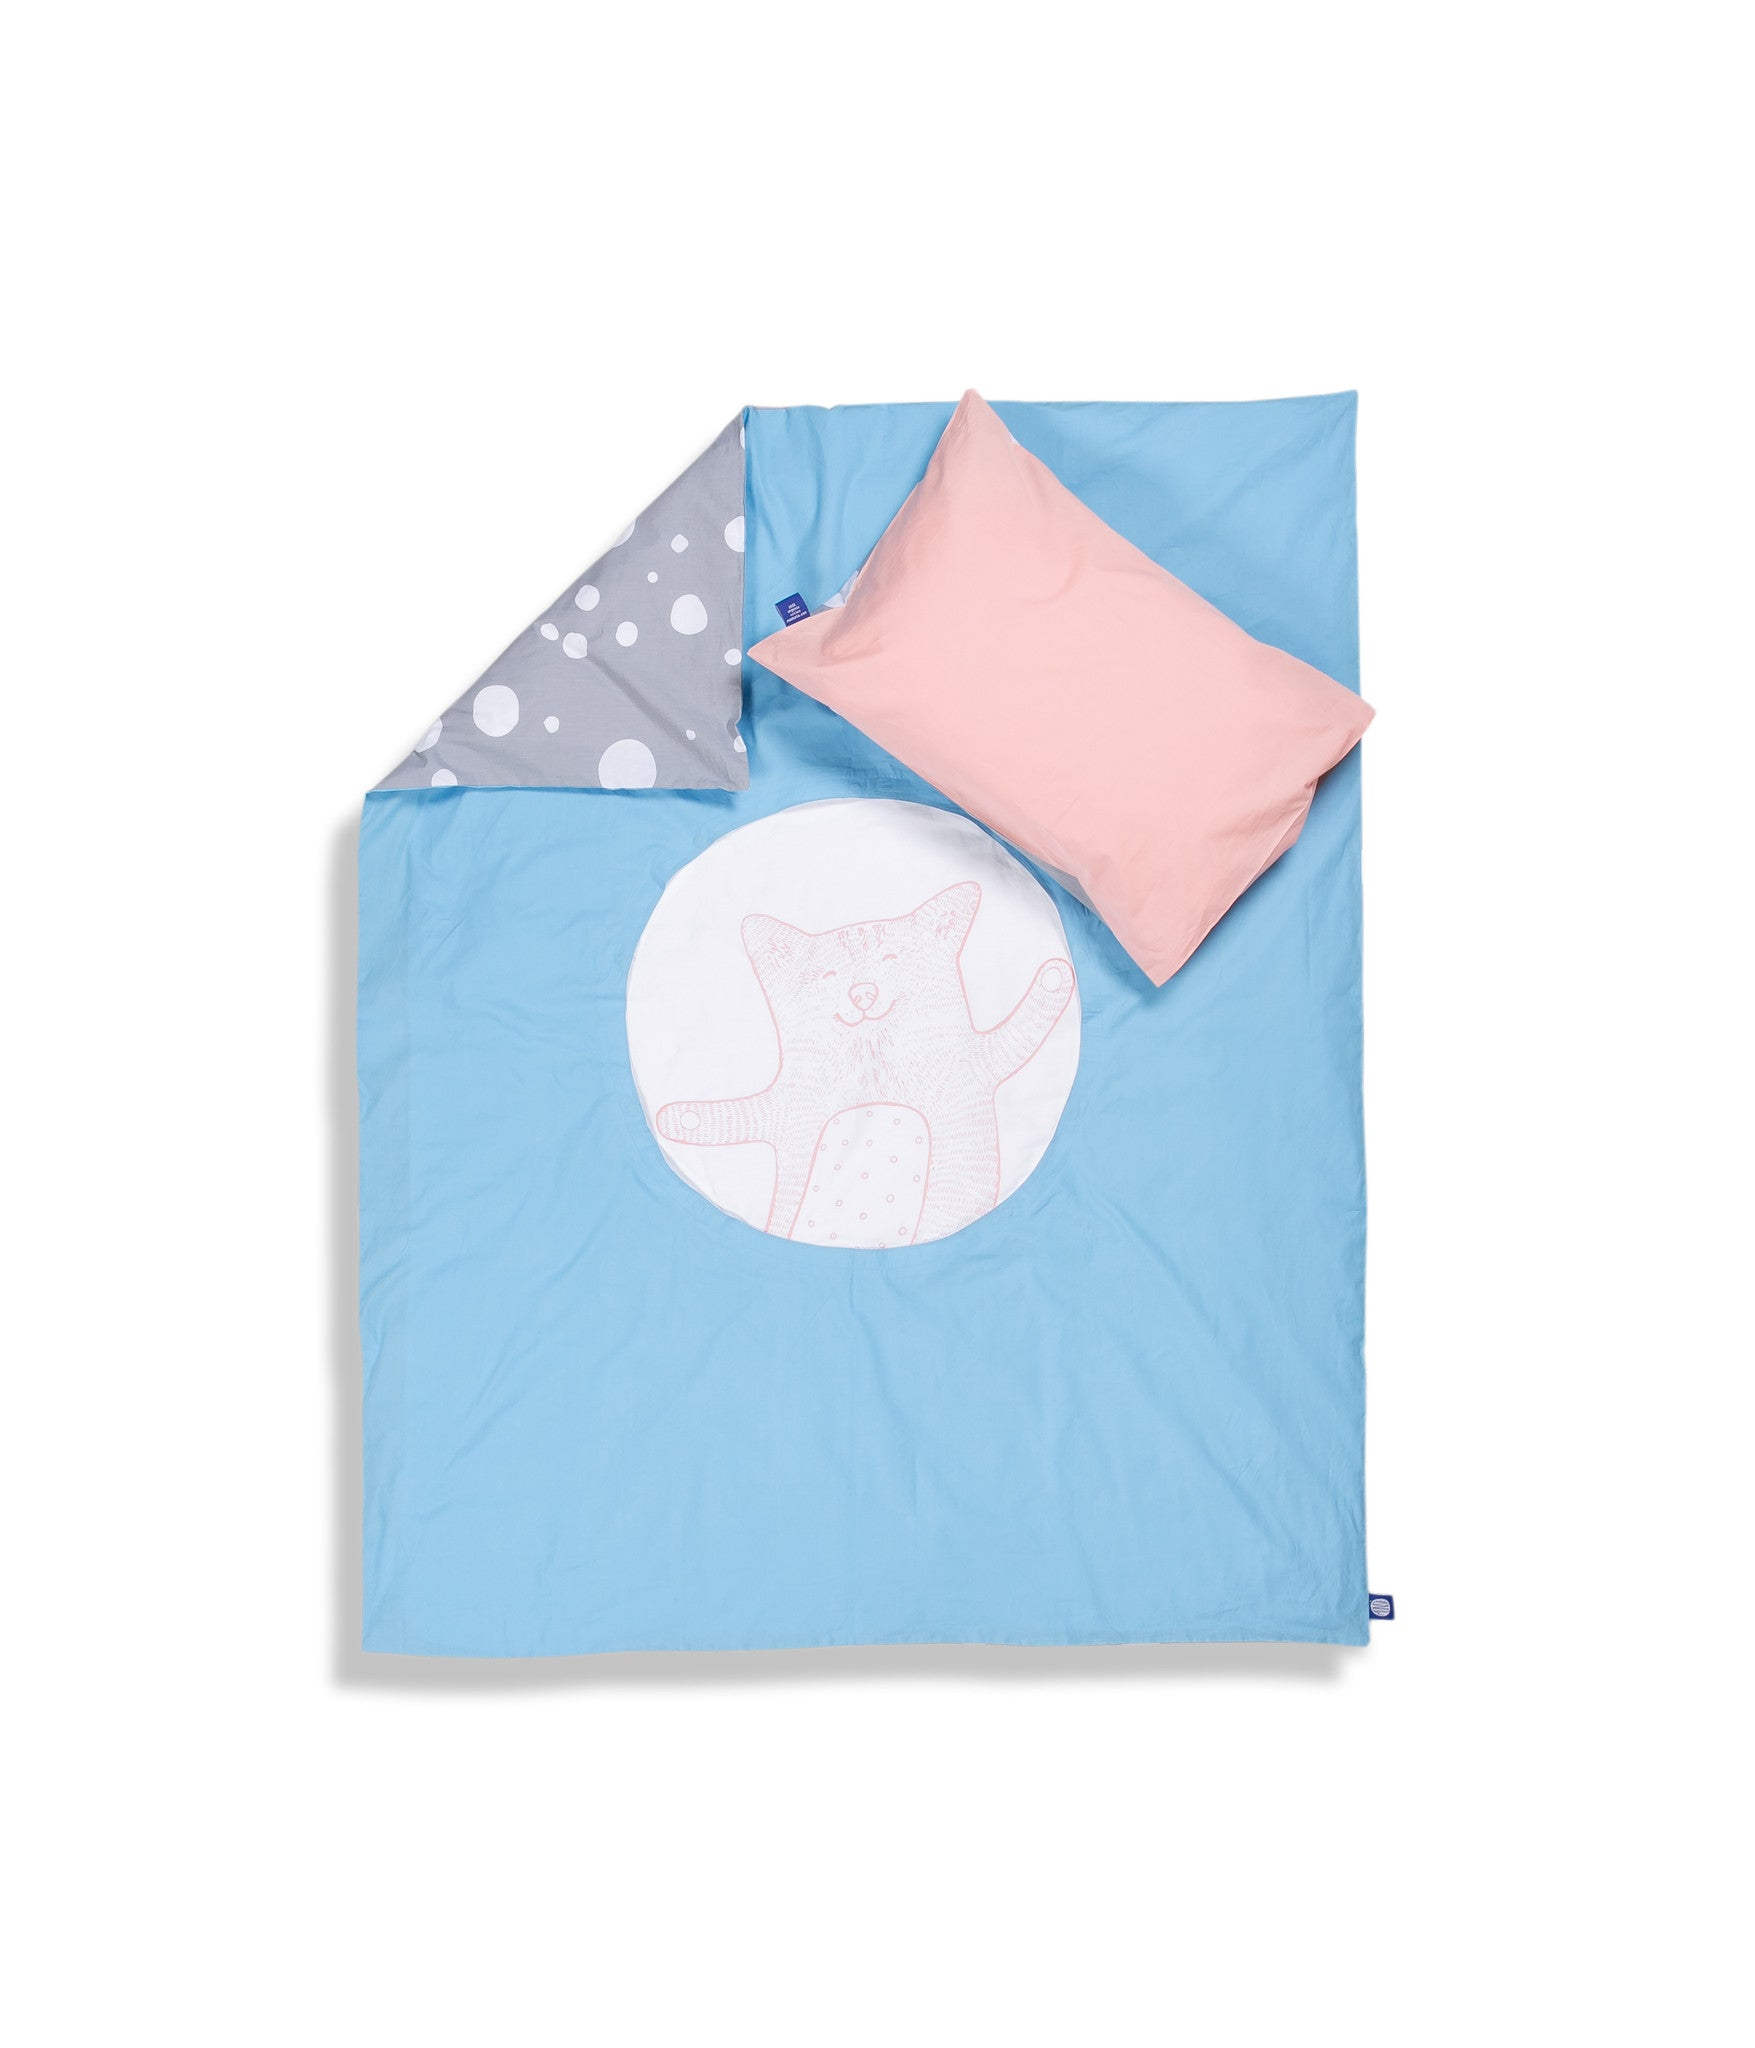 Organic cotton cot bed set. Baby bedding. Pink pillow case and blue duvet cover with cat. Dotted pattern bed linen. Customised bedding.